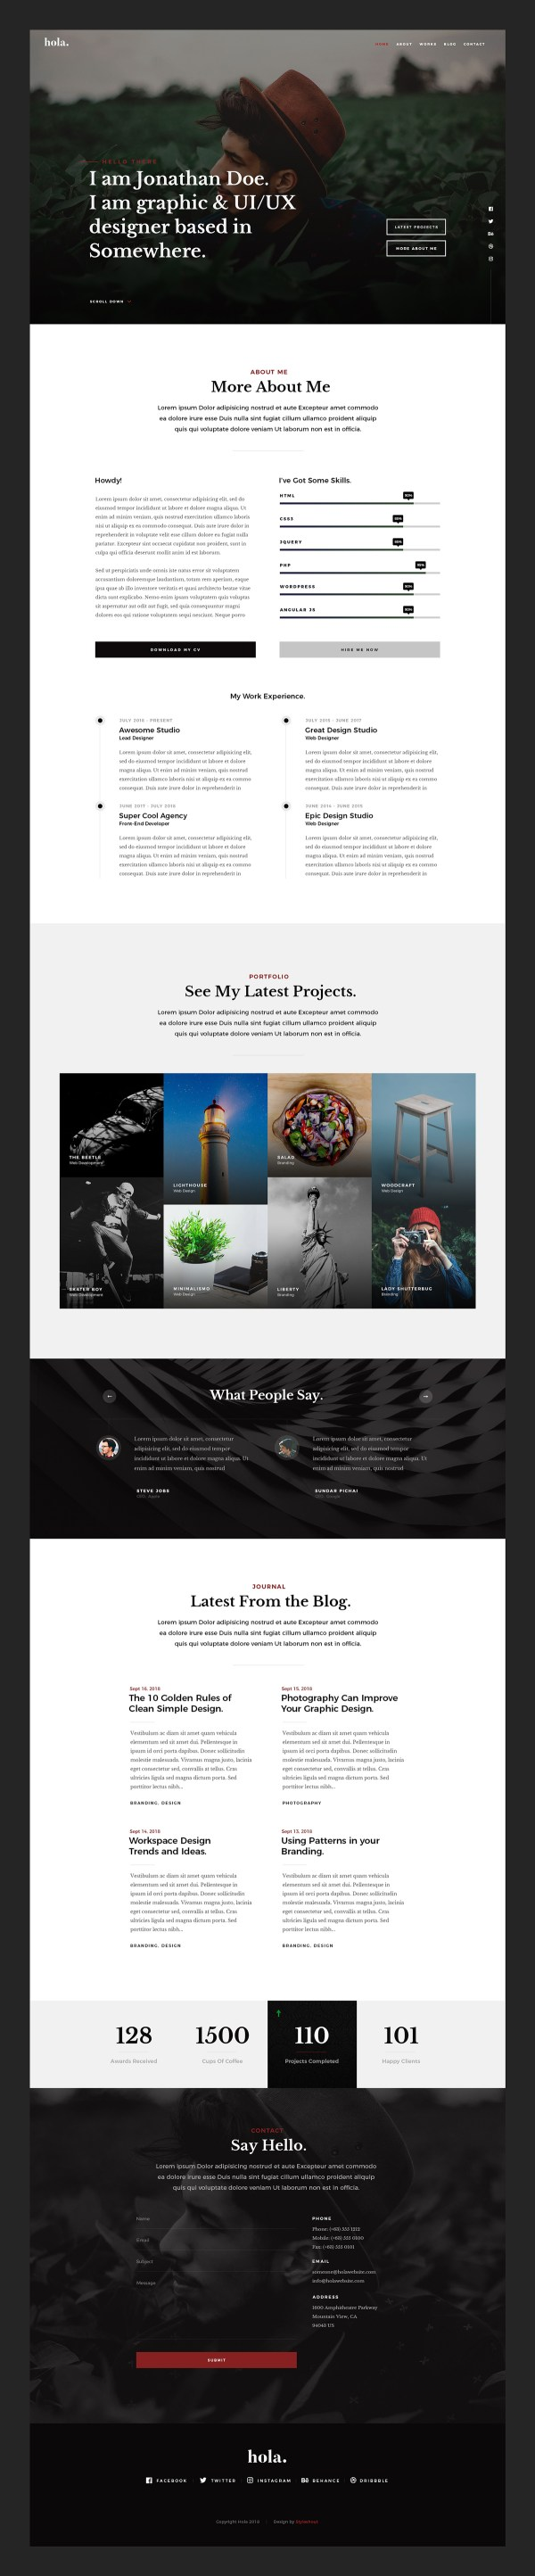 Hola -  Modern and Stylish vCard Free PSD Template 02